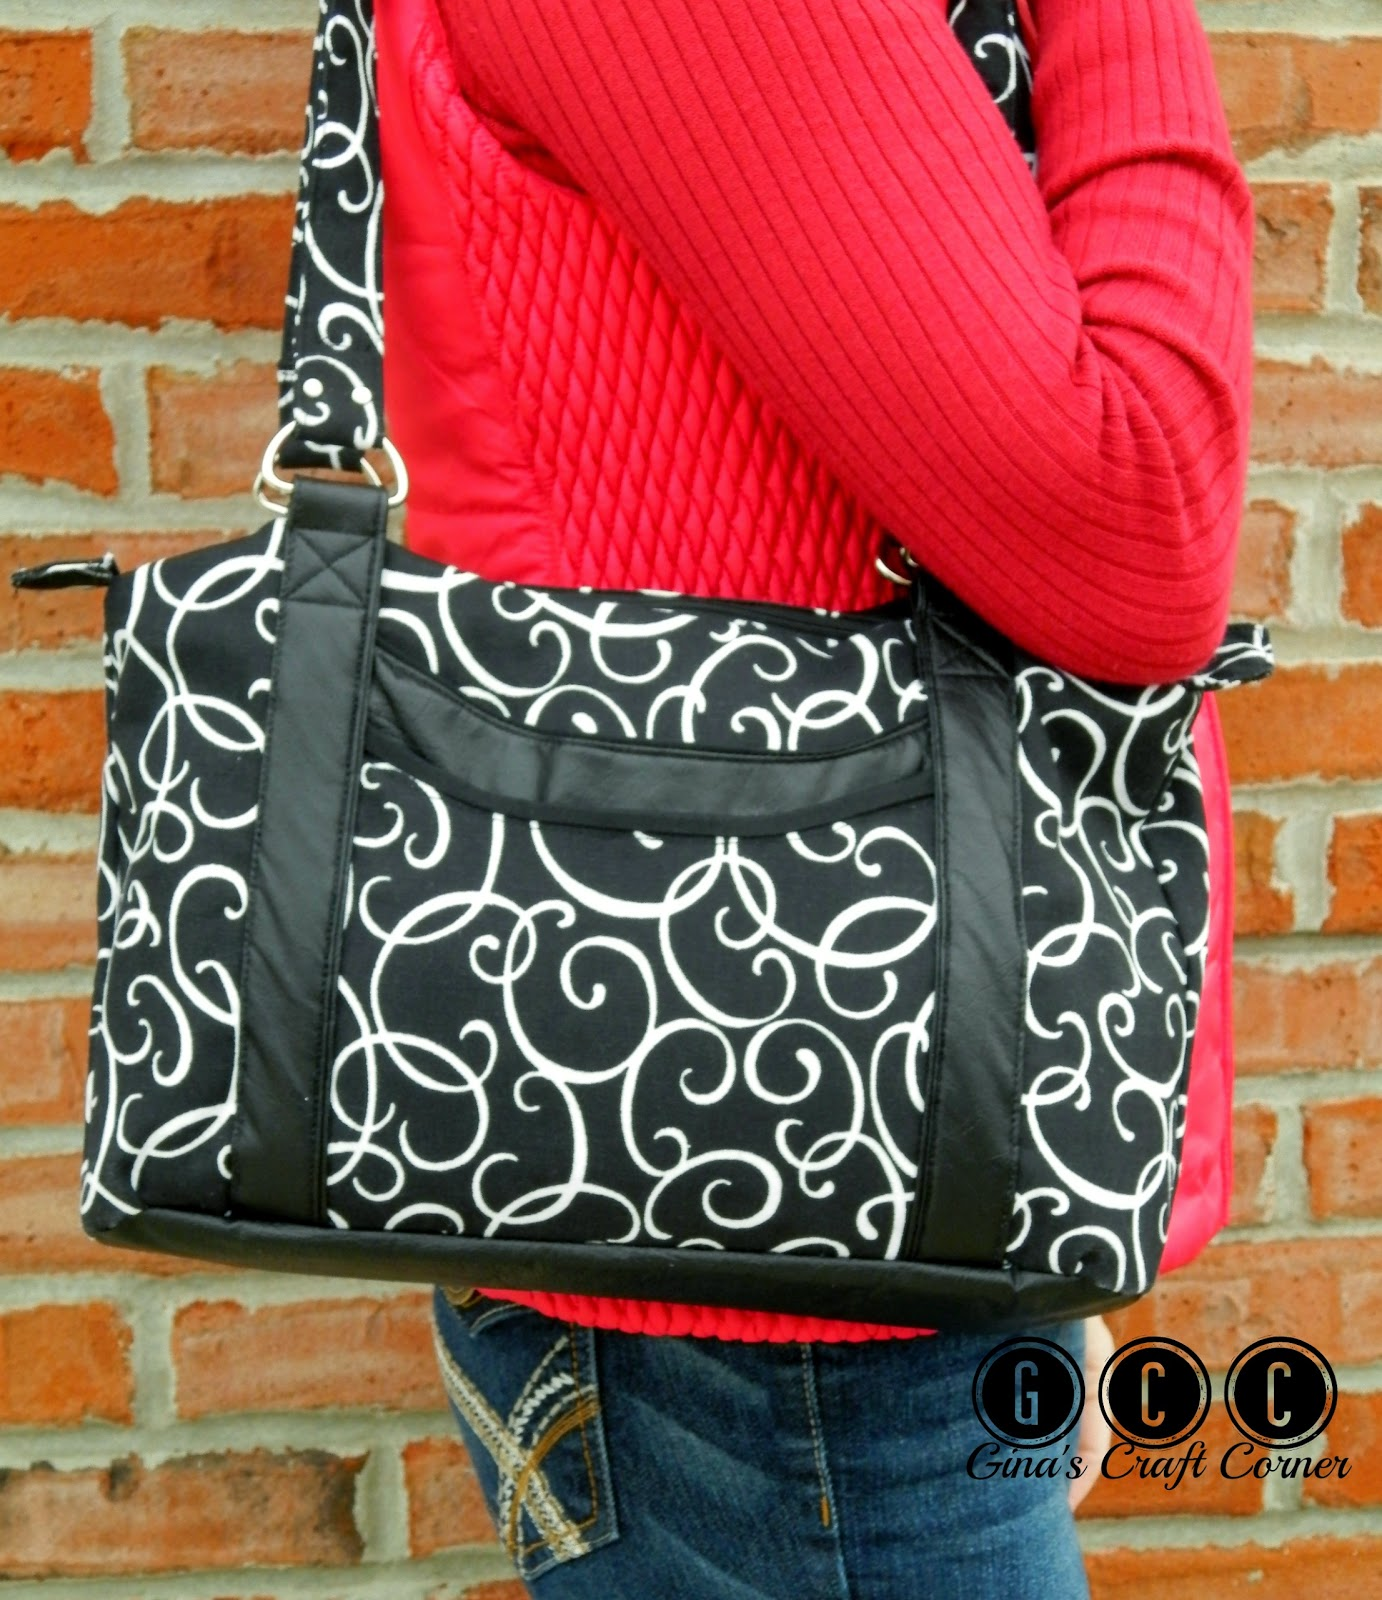 Concealed Carry Purse by Gina's Craft Corner